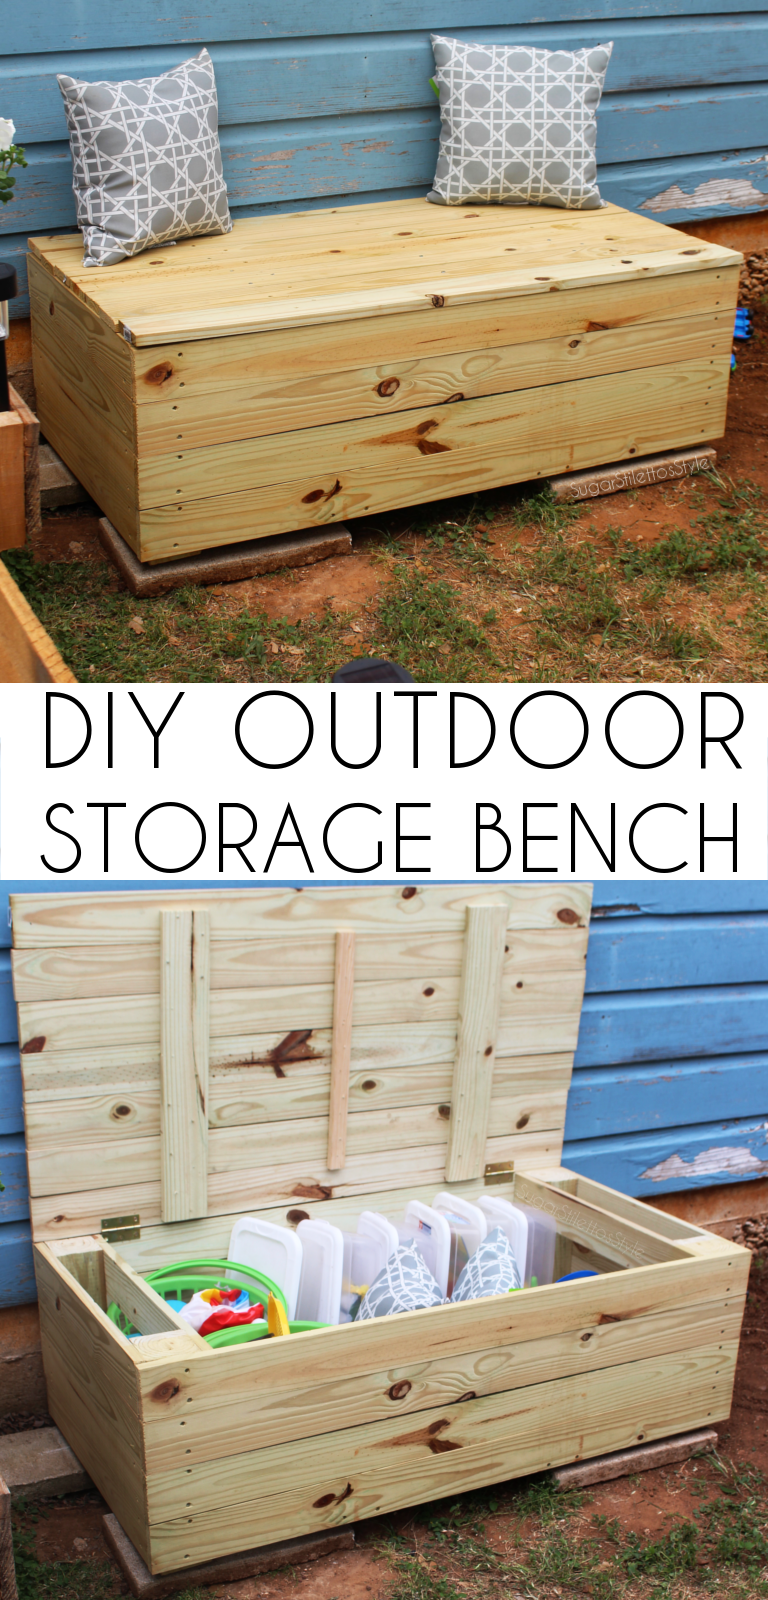 Diy Outdoor Storage Bench Outdoor Toy Box Home Decor Pinterest